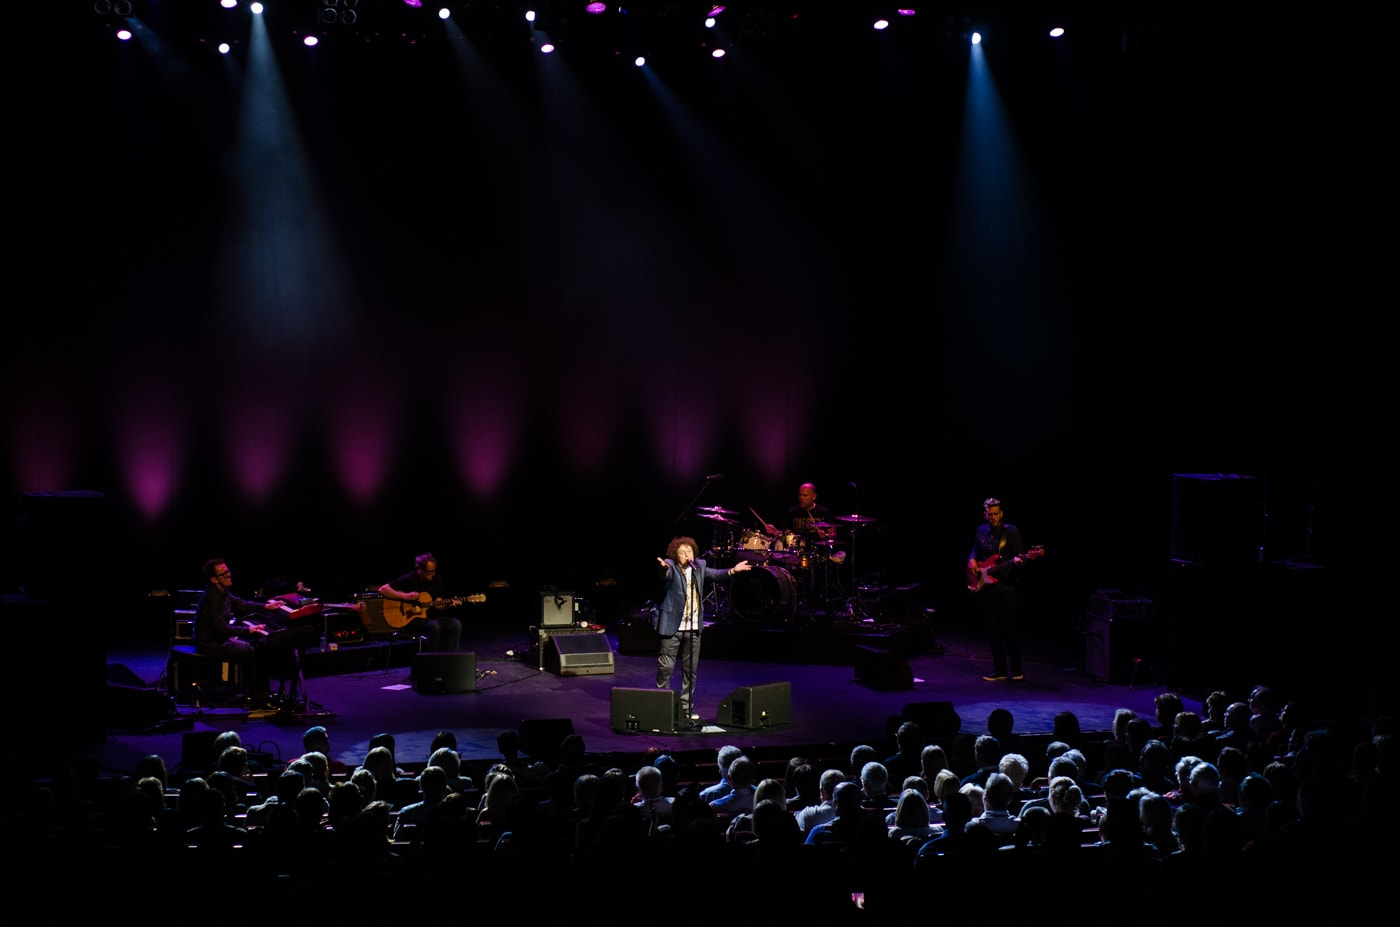 Leo Sayer at Bord Gais Energy Theatre by Sean Smyth (16-10-15) (50 of 129)